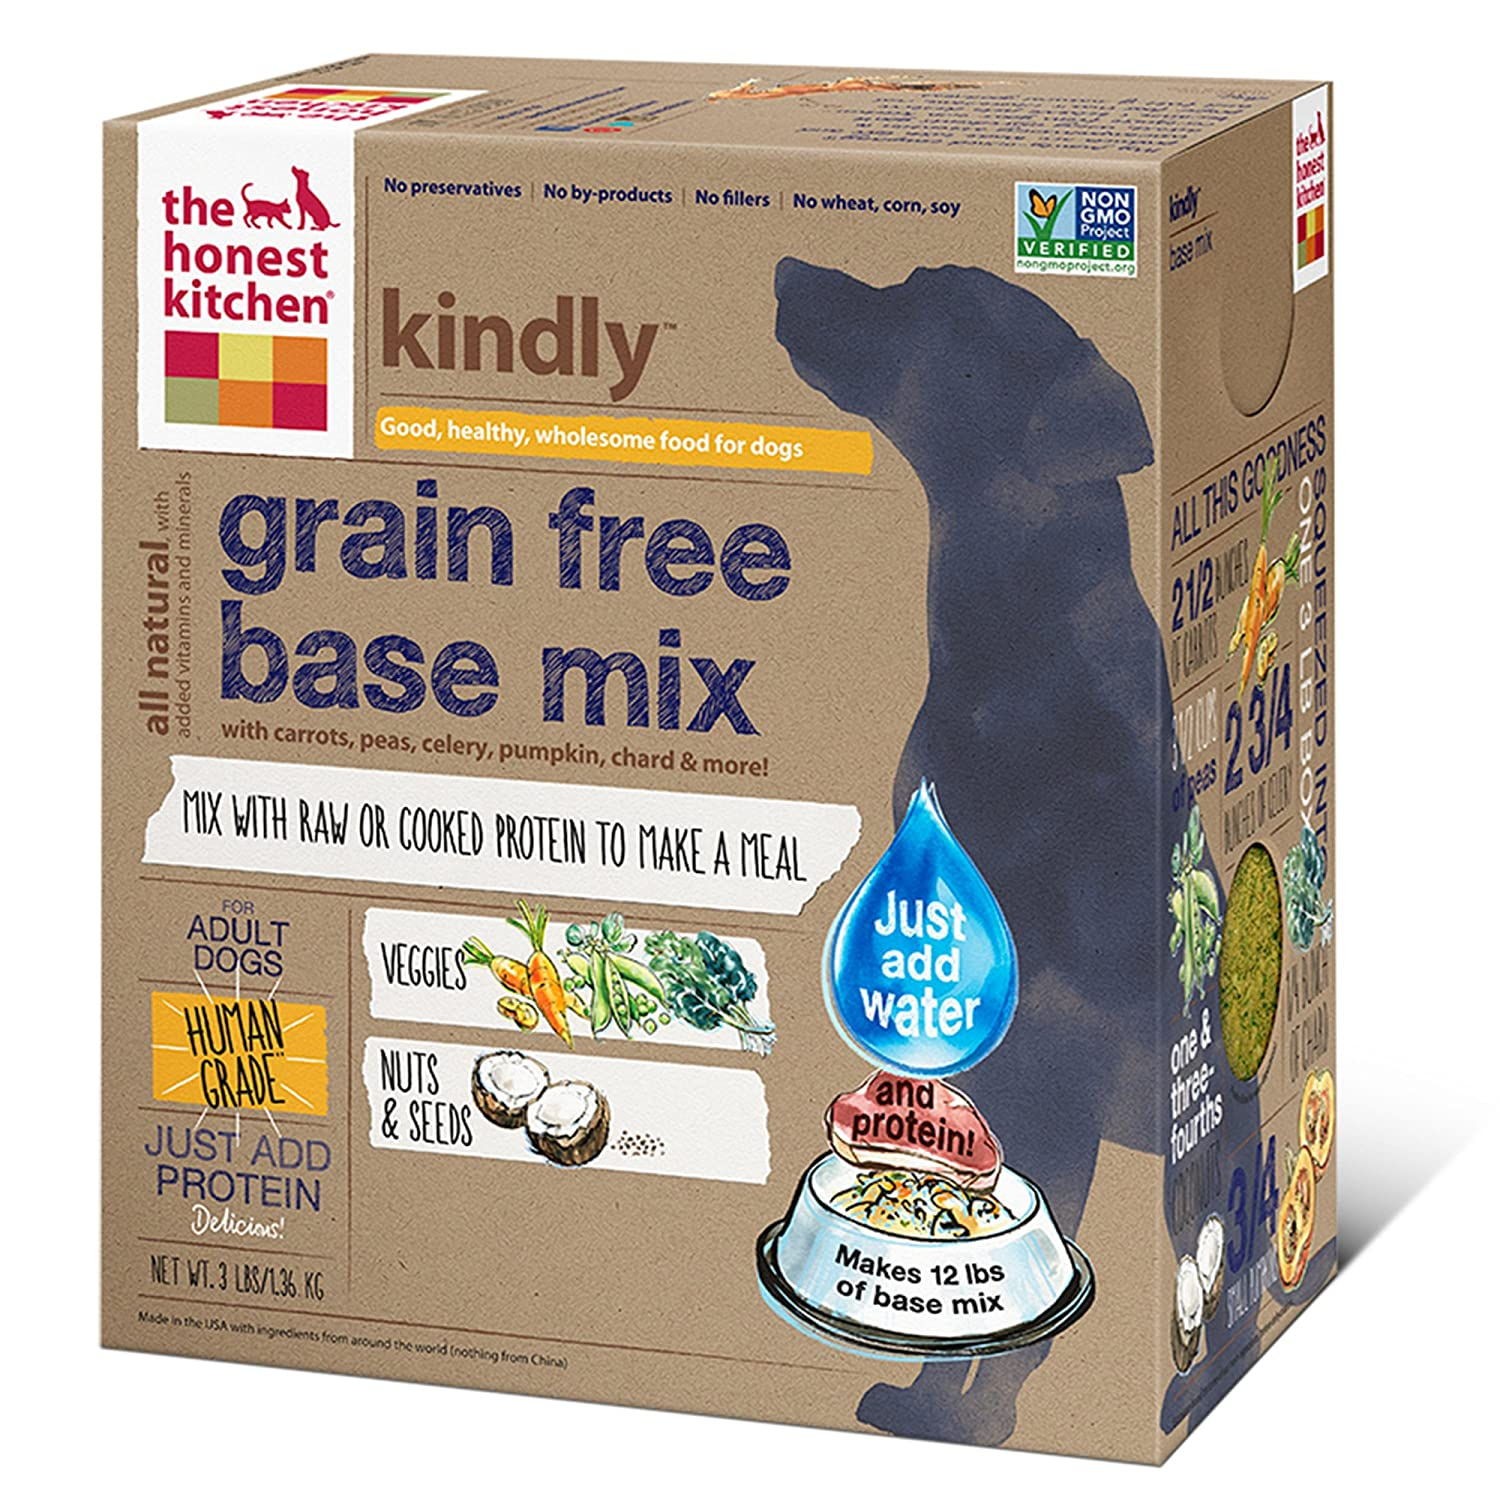 the honest kitchen kindly grain free base mix natural human